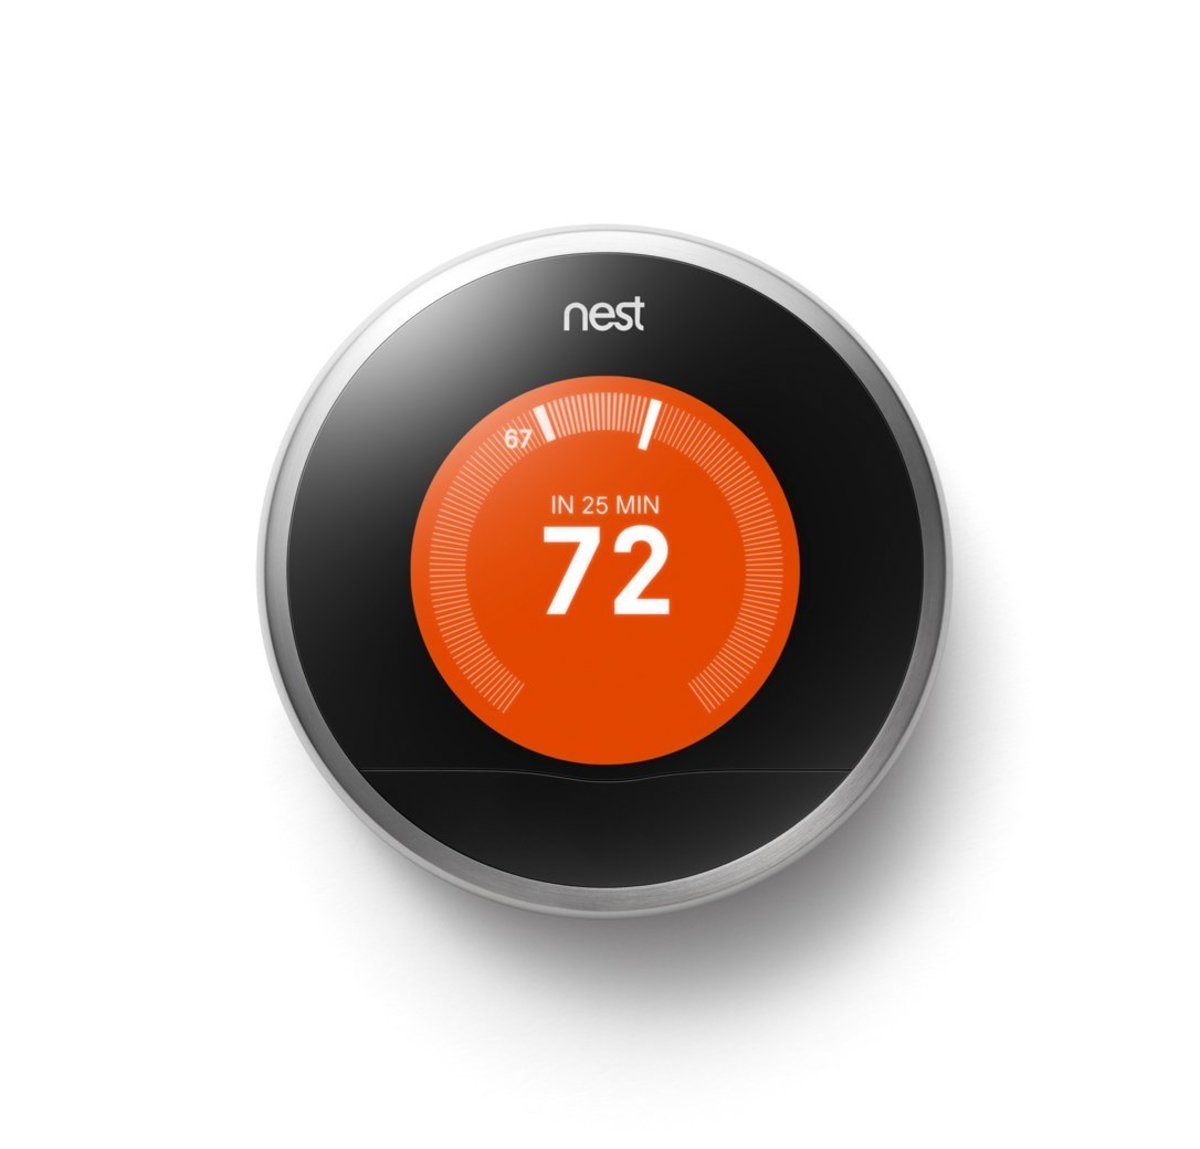 The Nest Thermostat is a revolutionary new gadget that can save you money by knowing when you're home and memorizing your heating and AC needs.